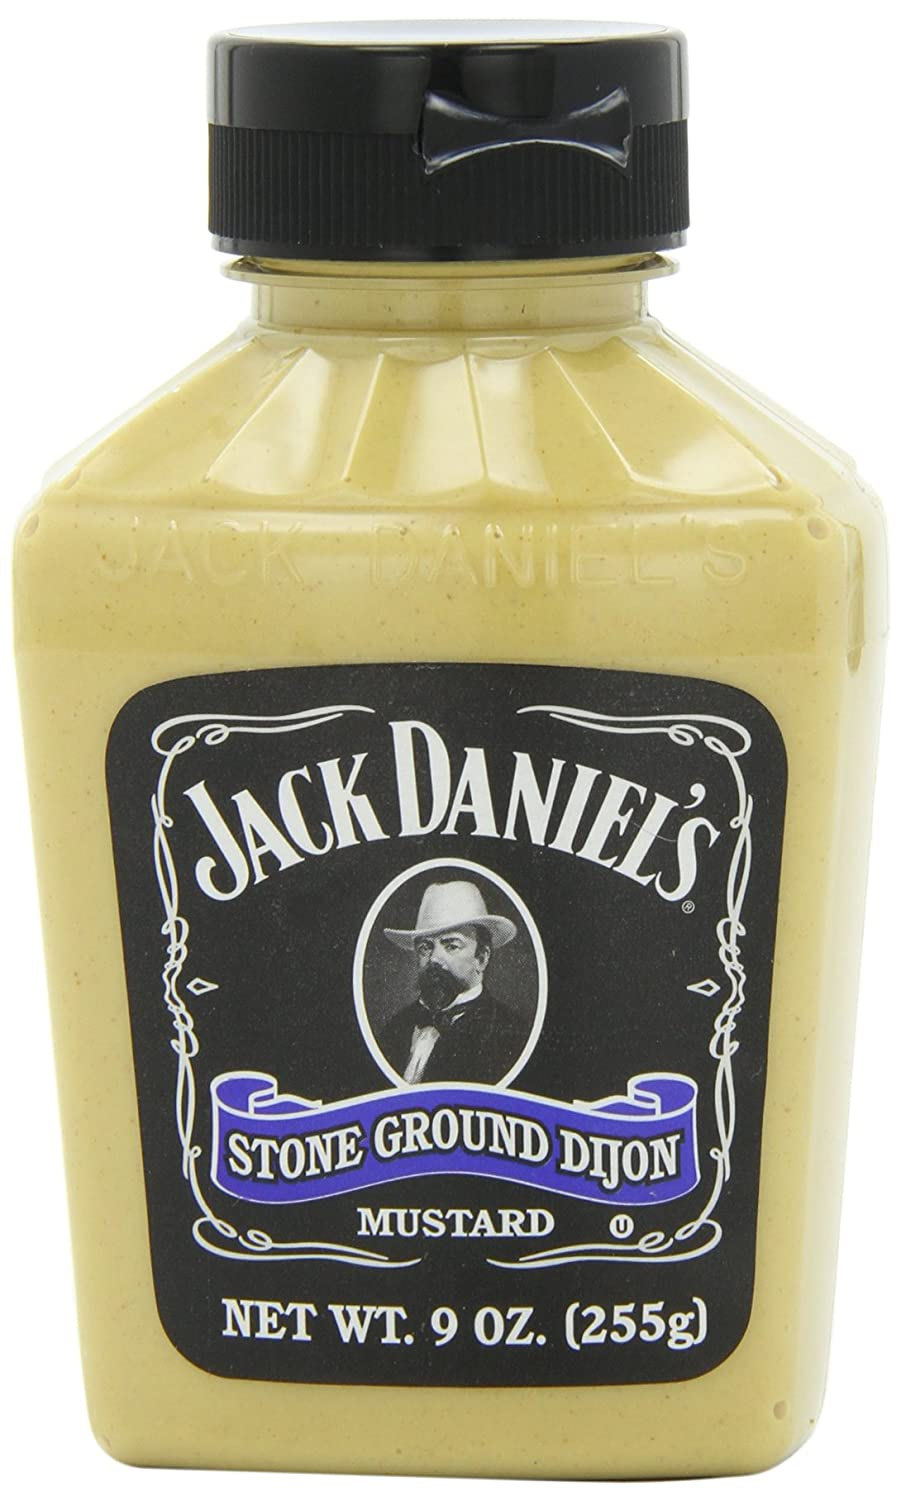 Amazon.com : Jack Daniels Stone Ground Dijon Mustard, 9-Ounce Jars (Pack of 6) : Grocery & Gourmet Food